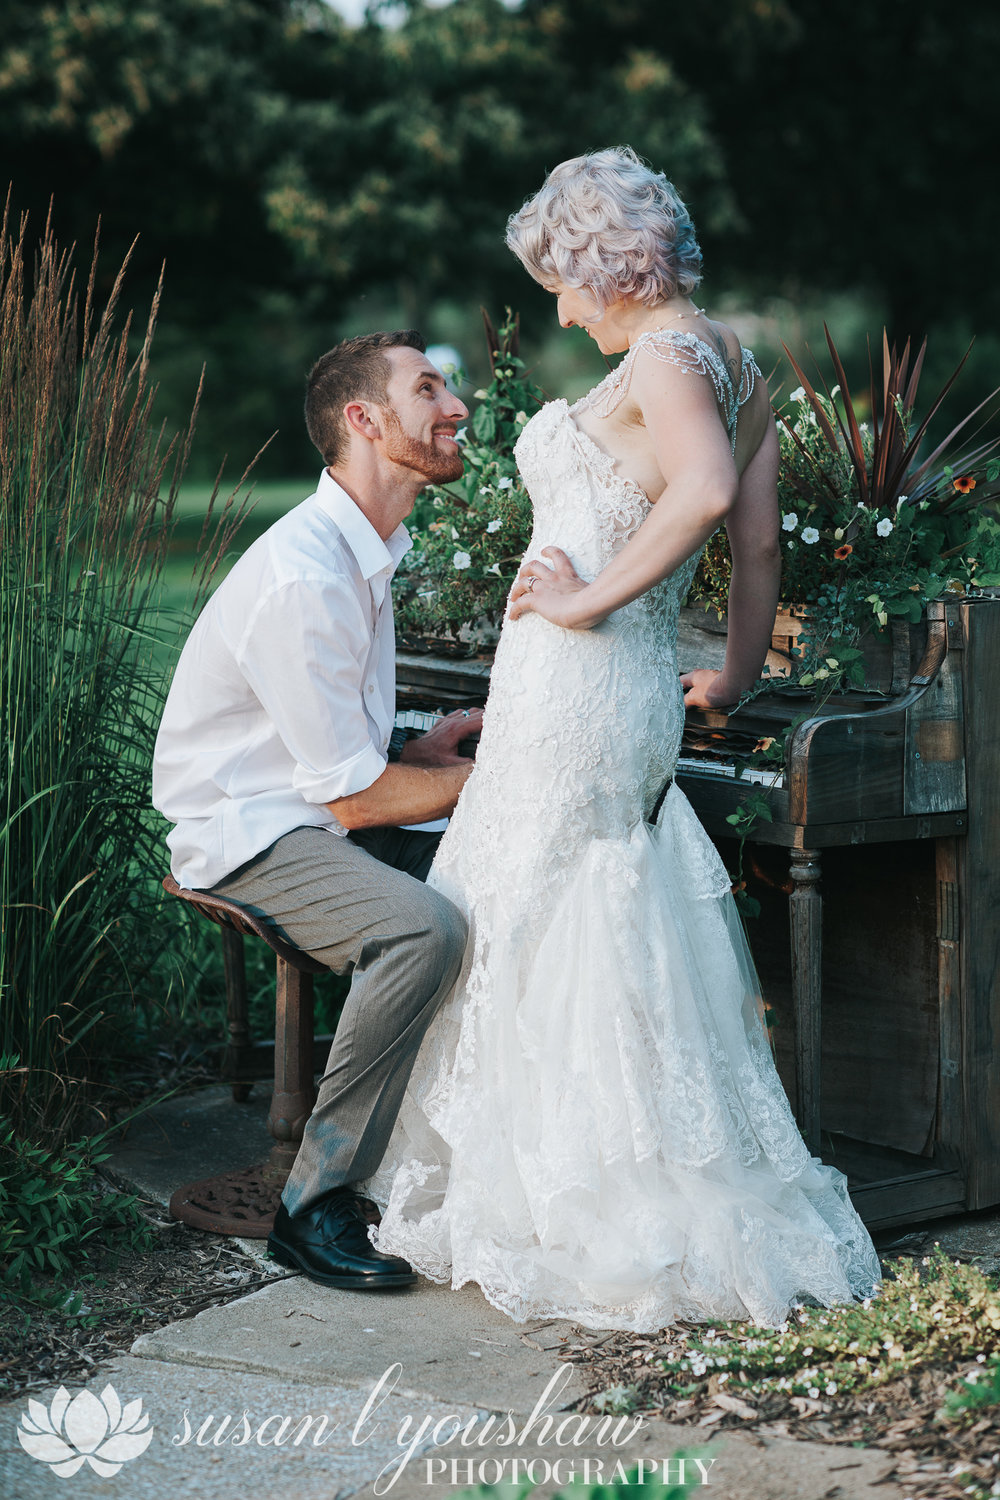 BLOG Kissy and Zane Diehl 07-14-2018 SLY Photography-170.jpg